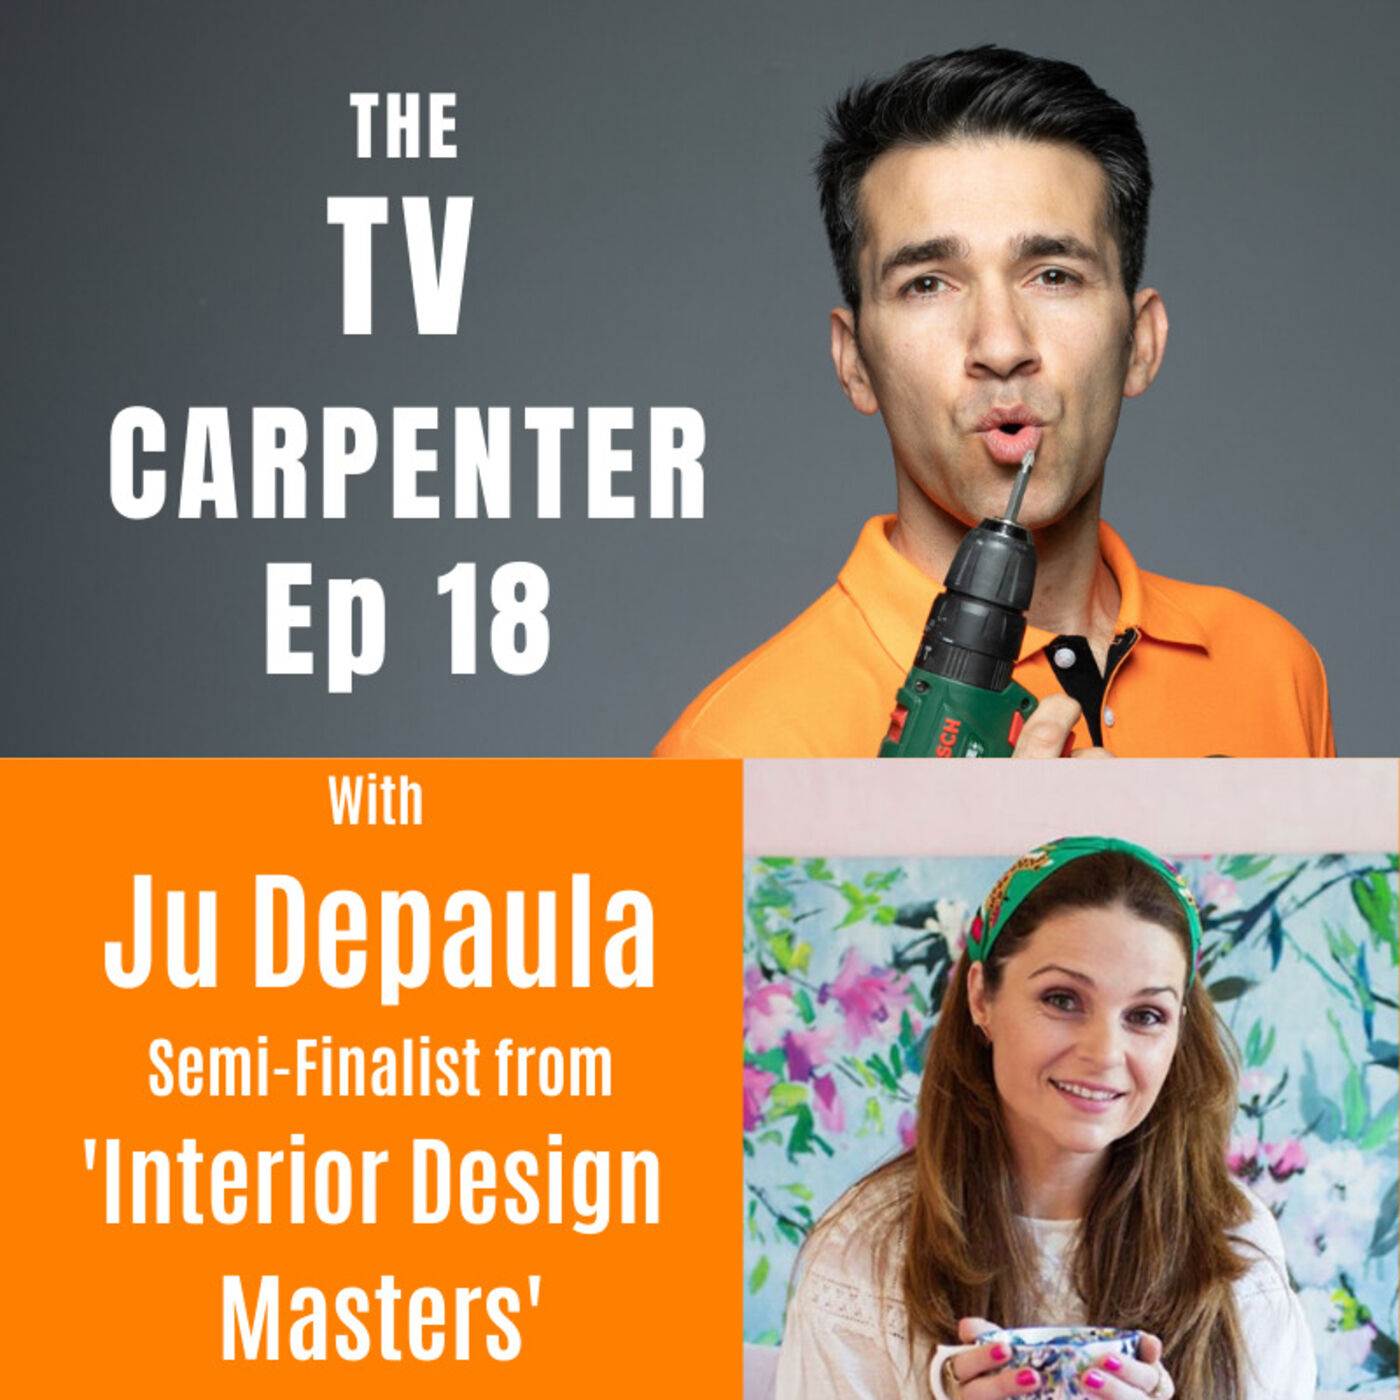 Wayne Chats With Ju Depaula Semi Finalist From Interior Design Masters